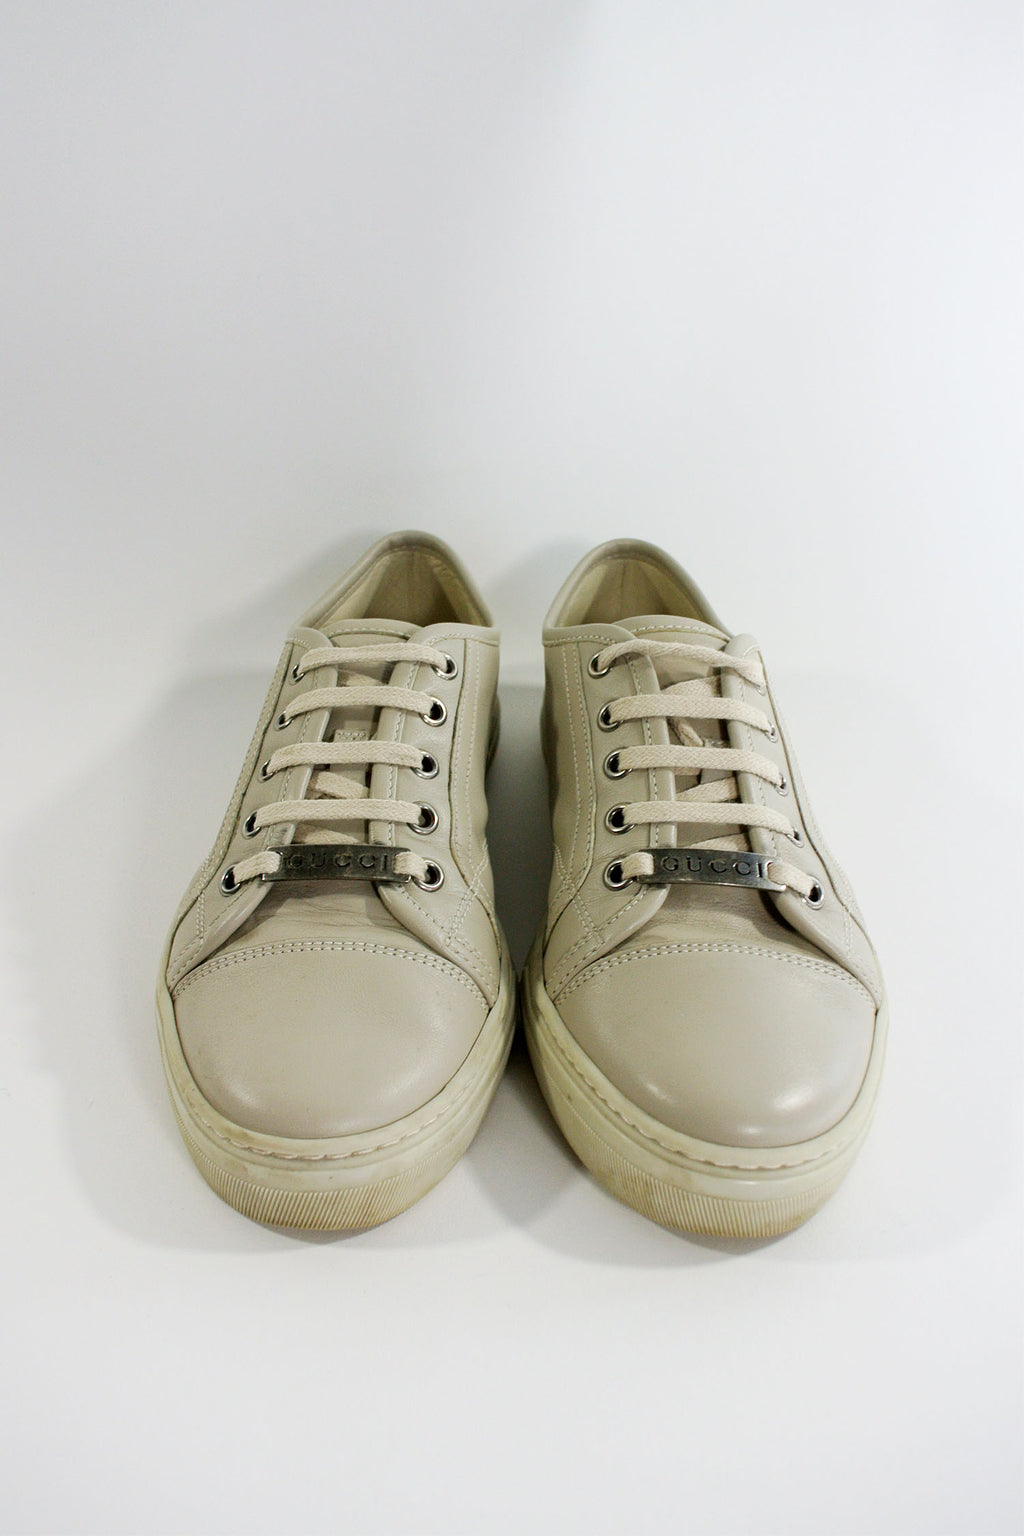 Gucci Taupe Leather Sneaker sz 36.5